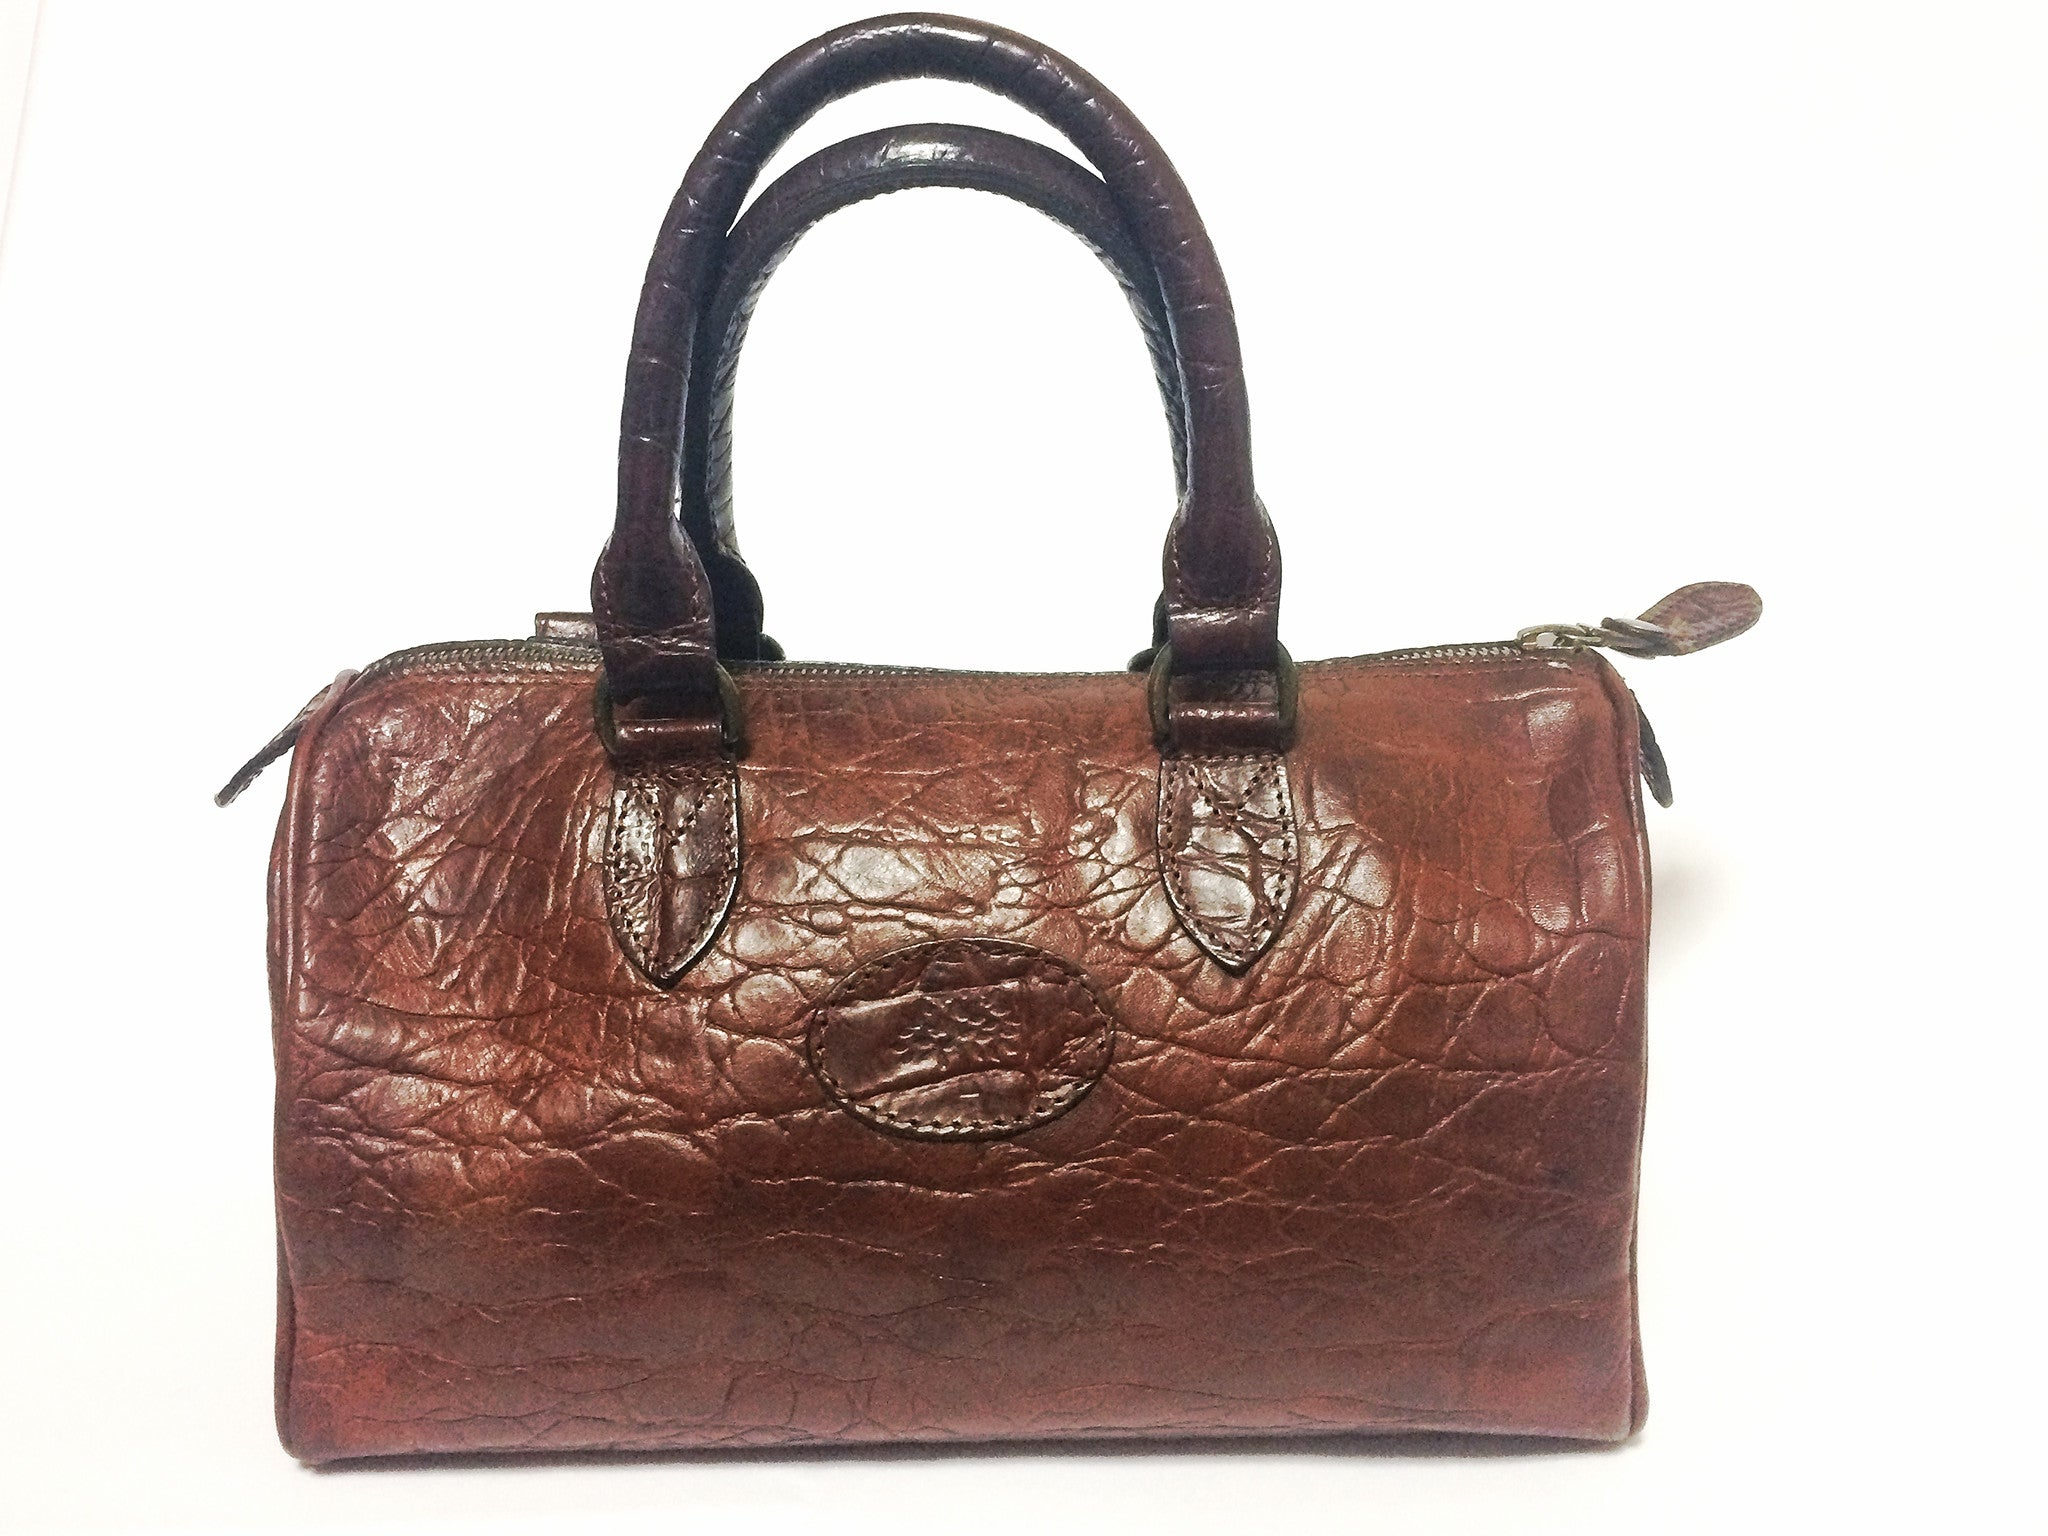 8a9a9e91049c Vintage Mulberry brown croc embossed leather speedy style mini handbag.Classic  purse by Roger Saul